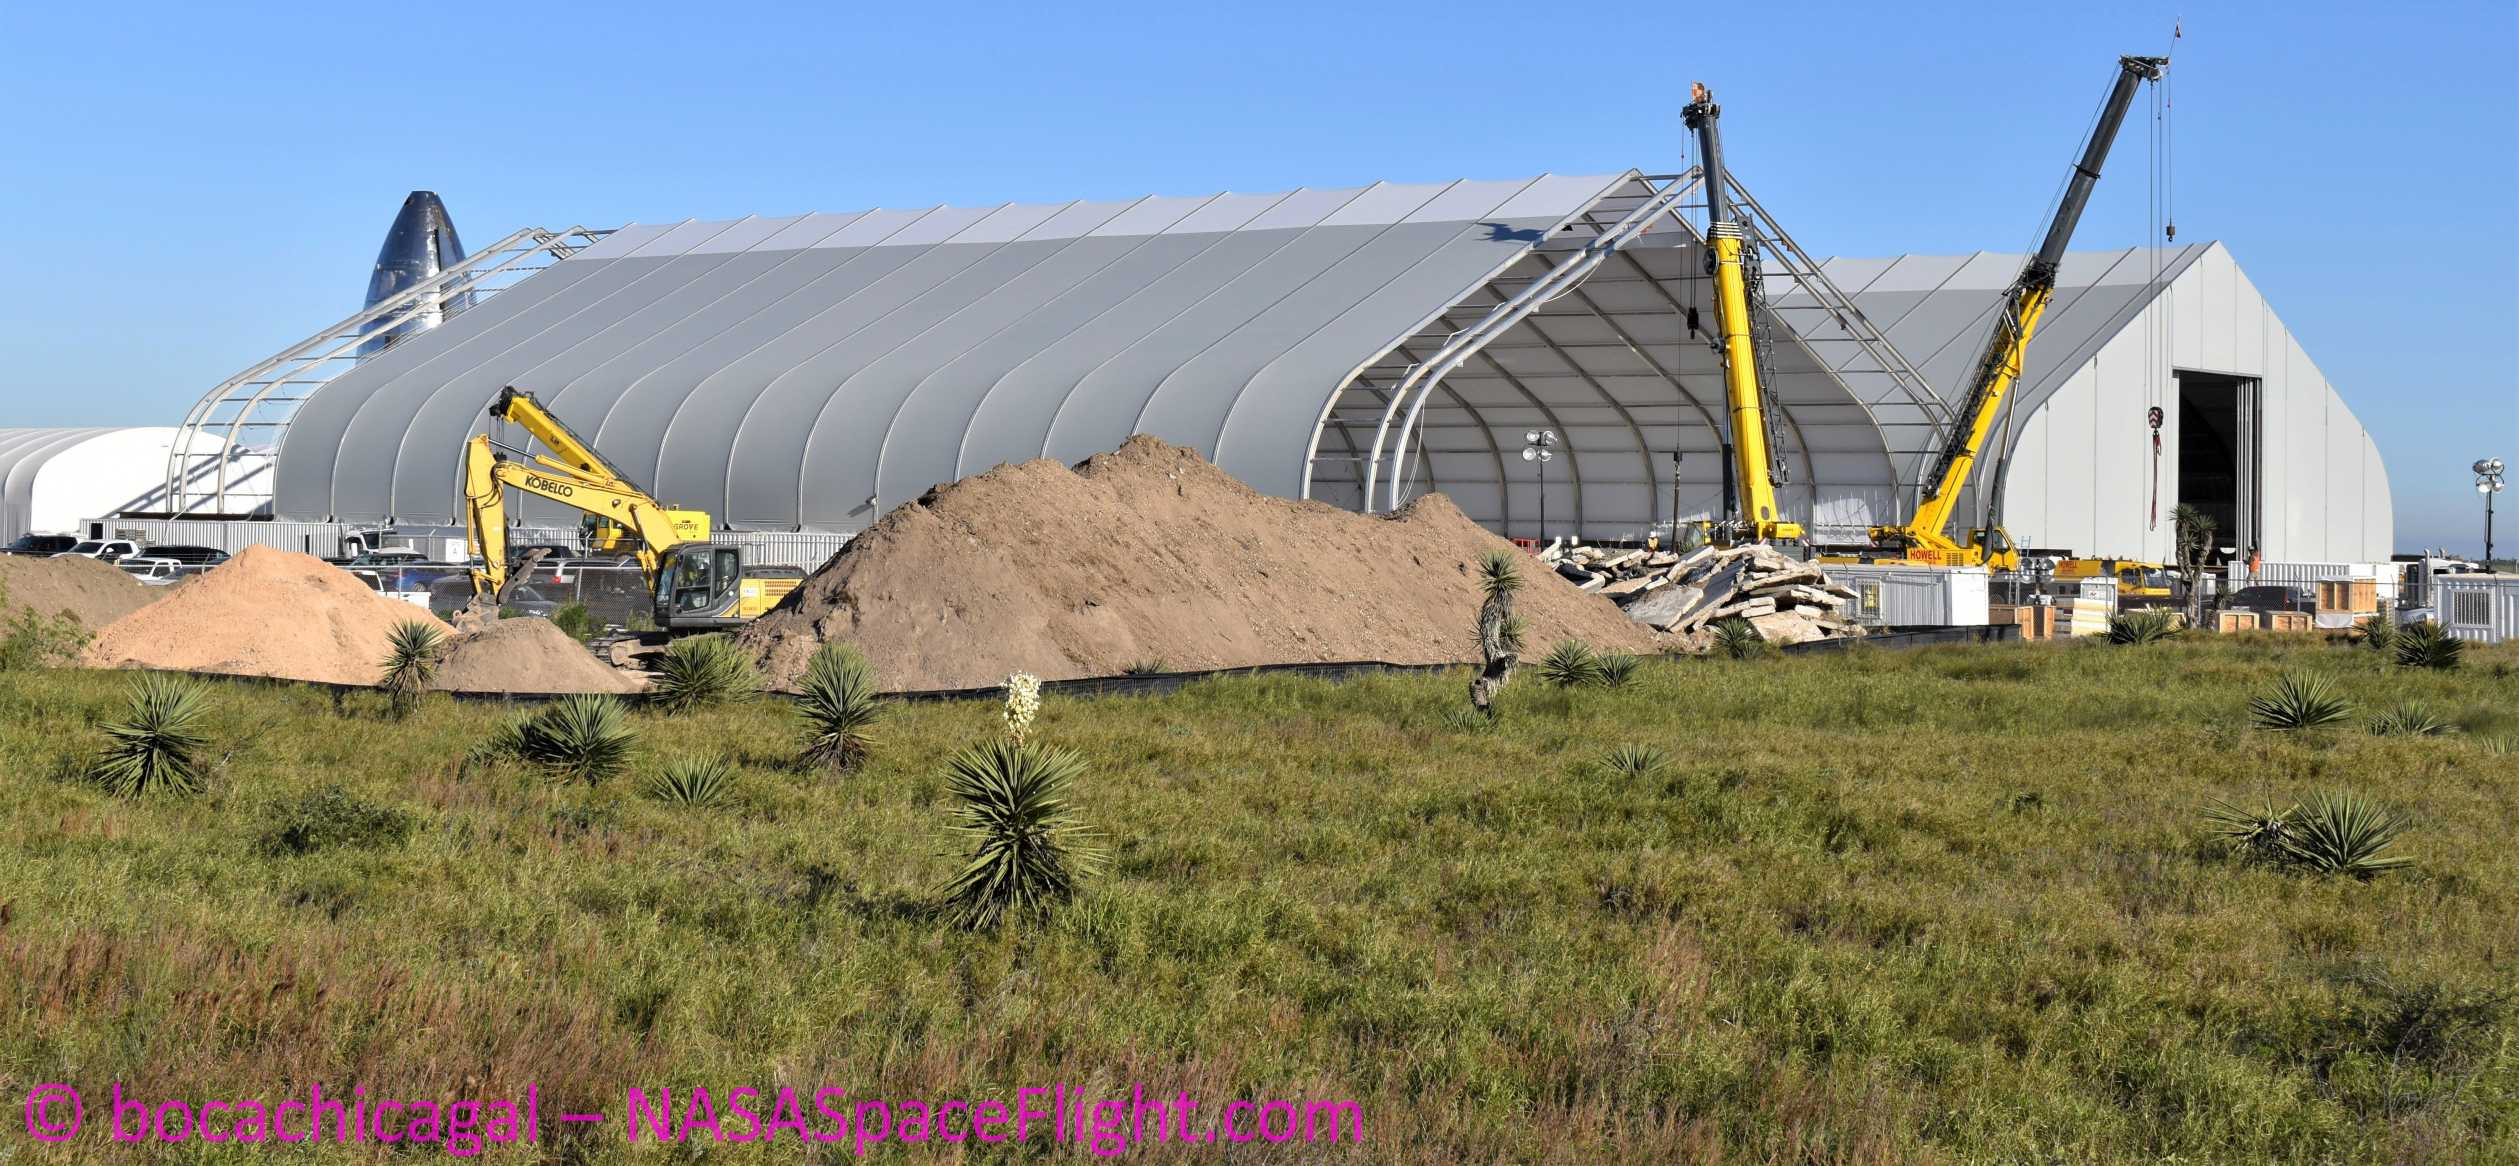 Starship Boca Chica 012920 (NASASpaceflight – bocachicagal) tents 1 crop (c)